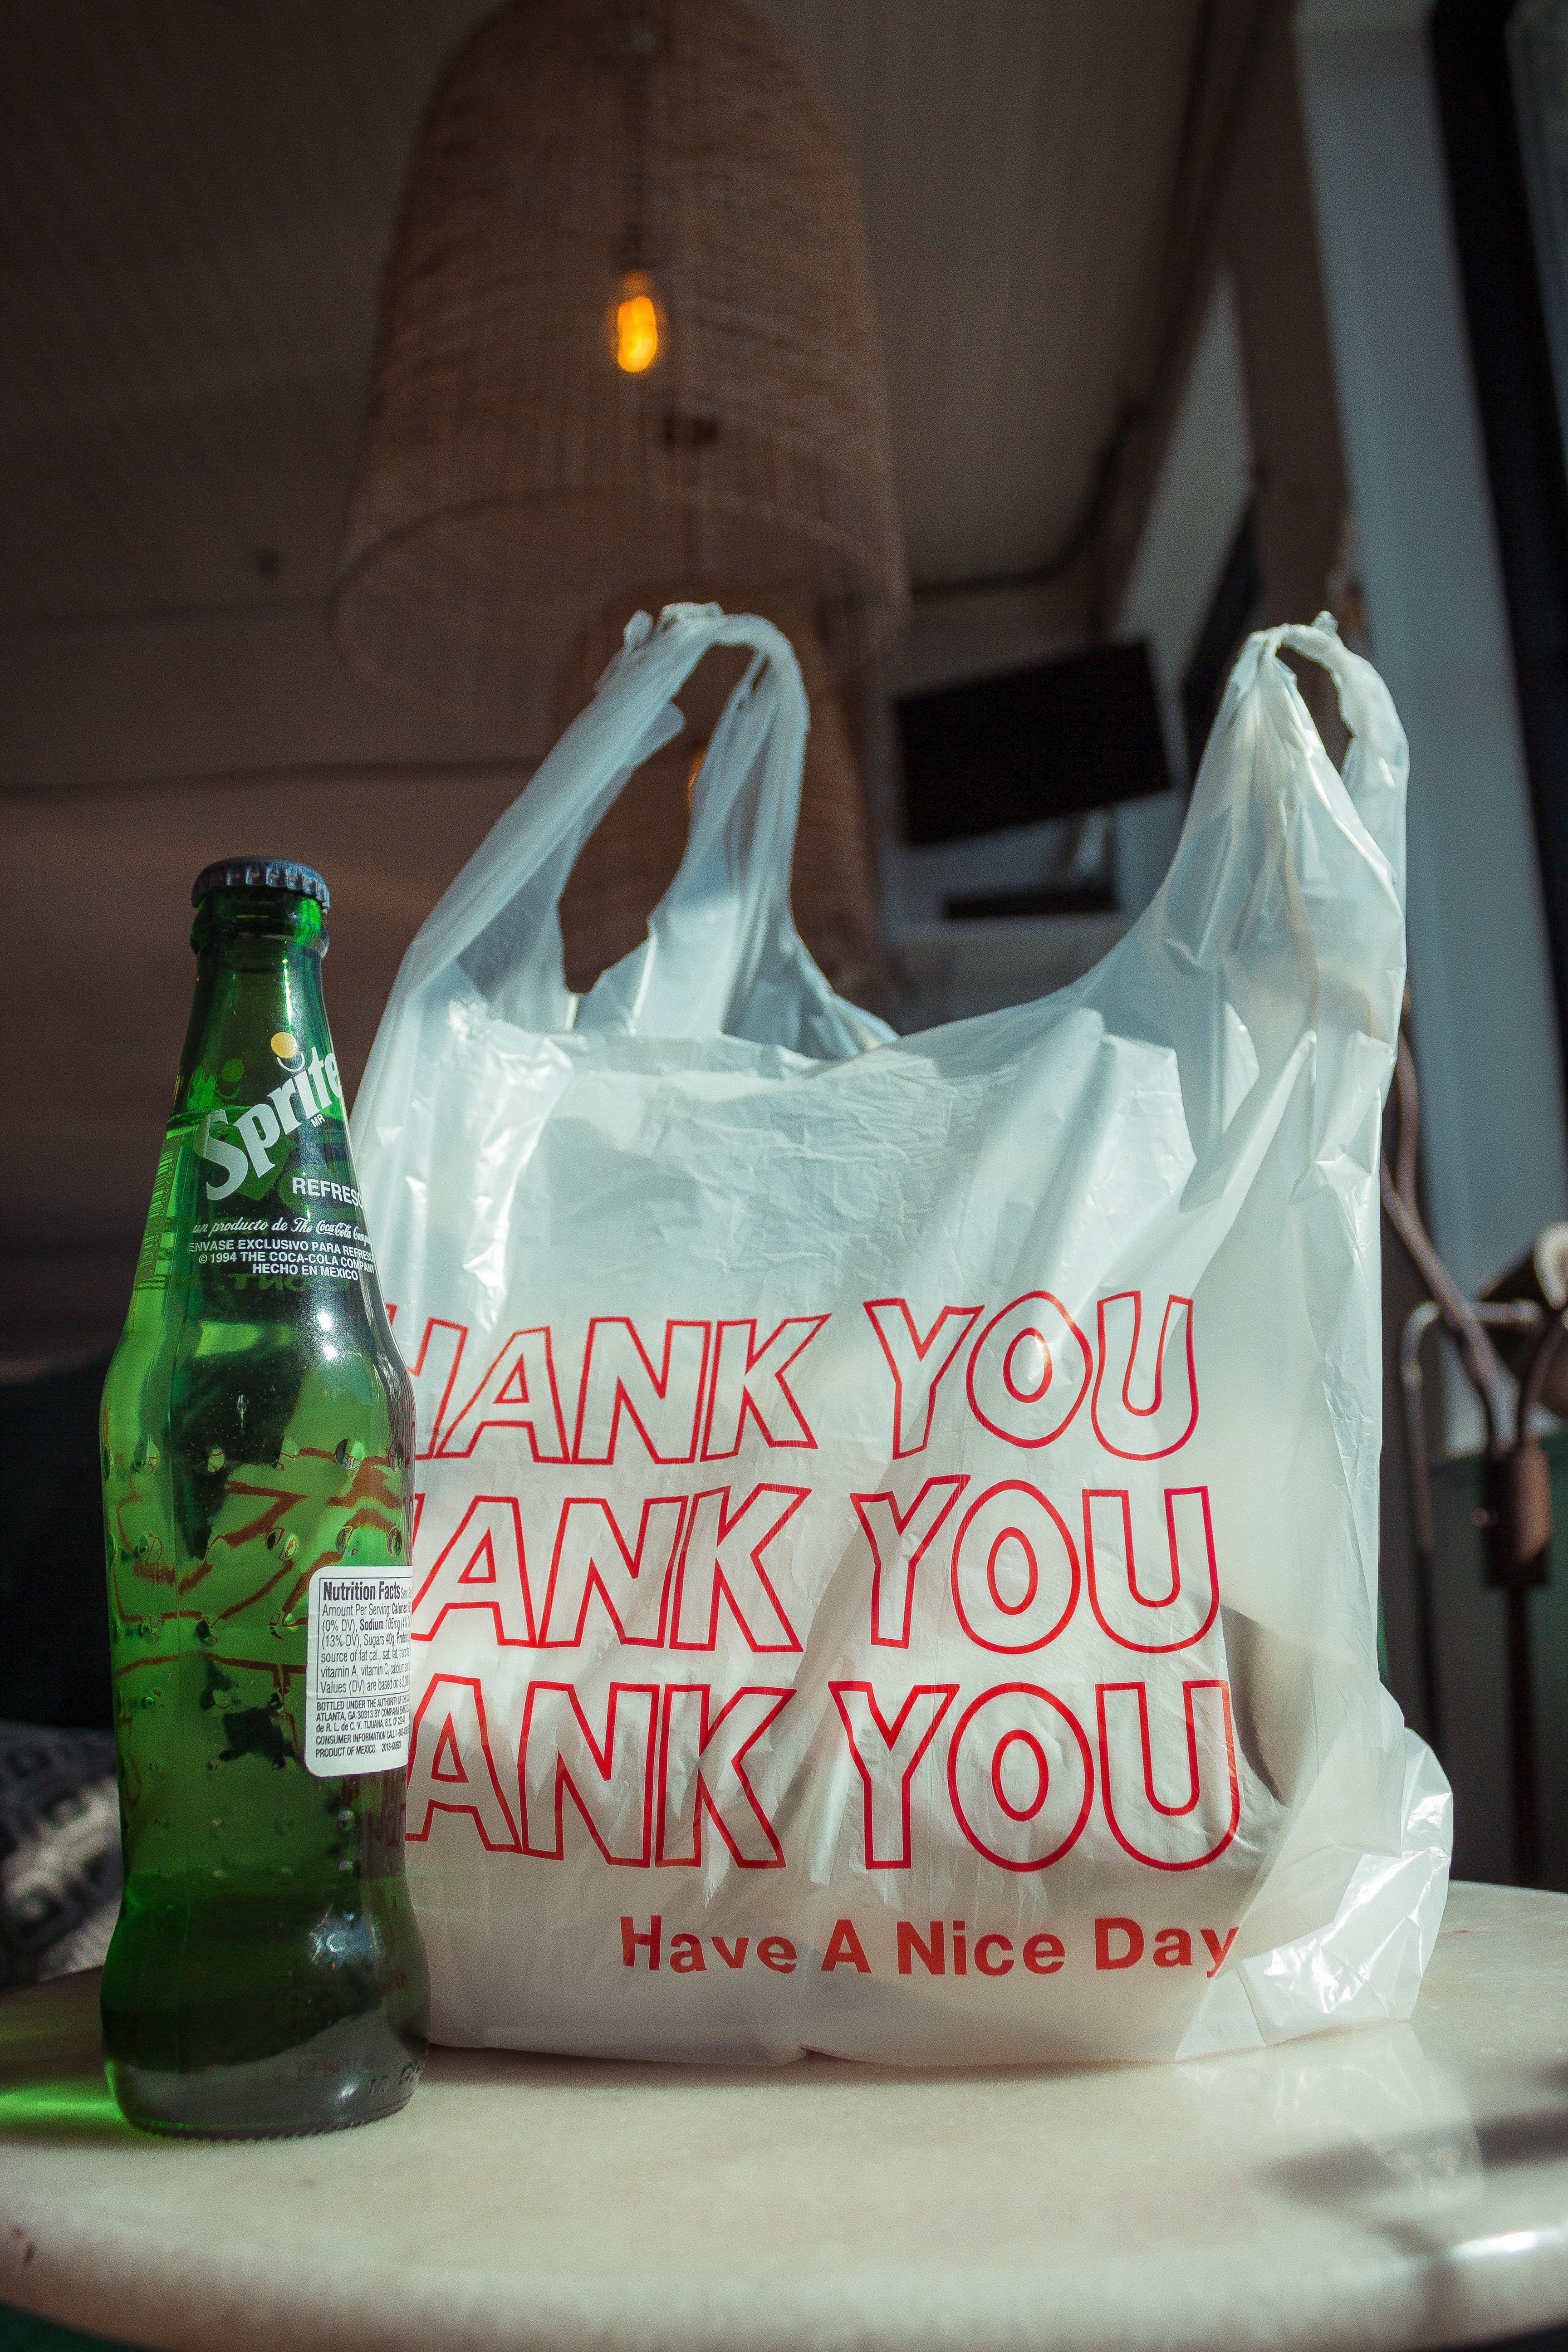 plastic trash bag and bottle of Sprite, waste created from shopping, ways to reduce waste